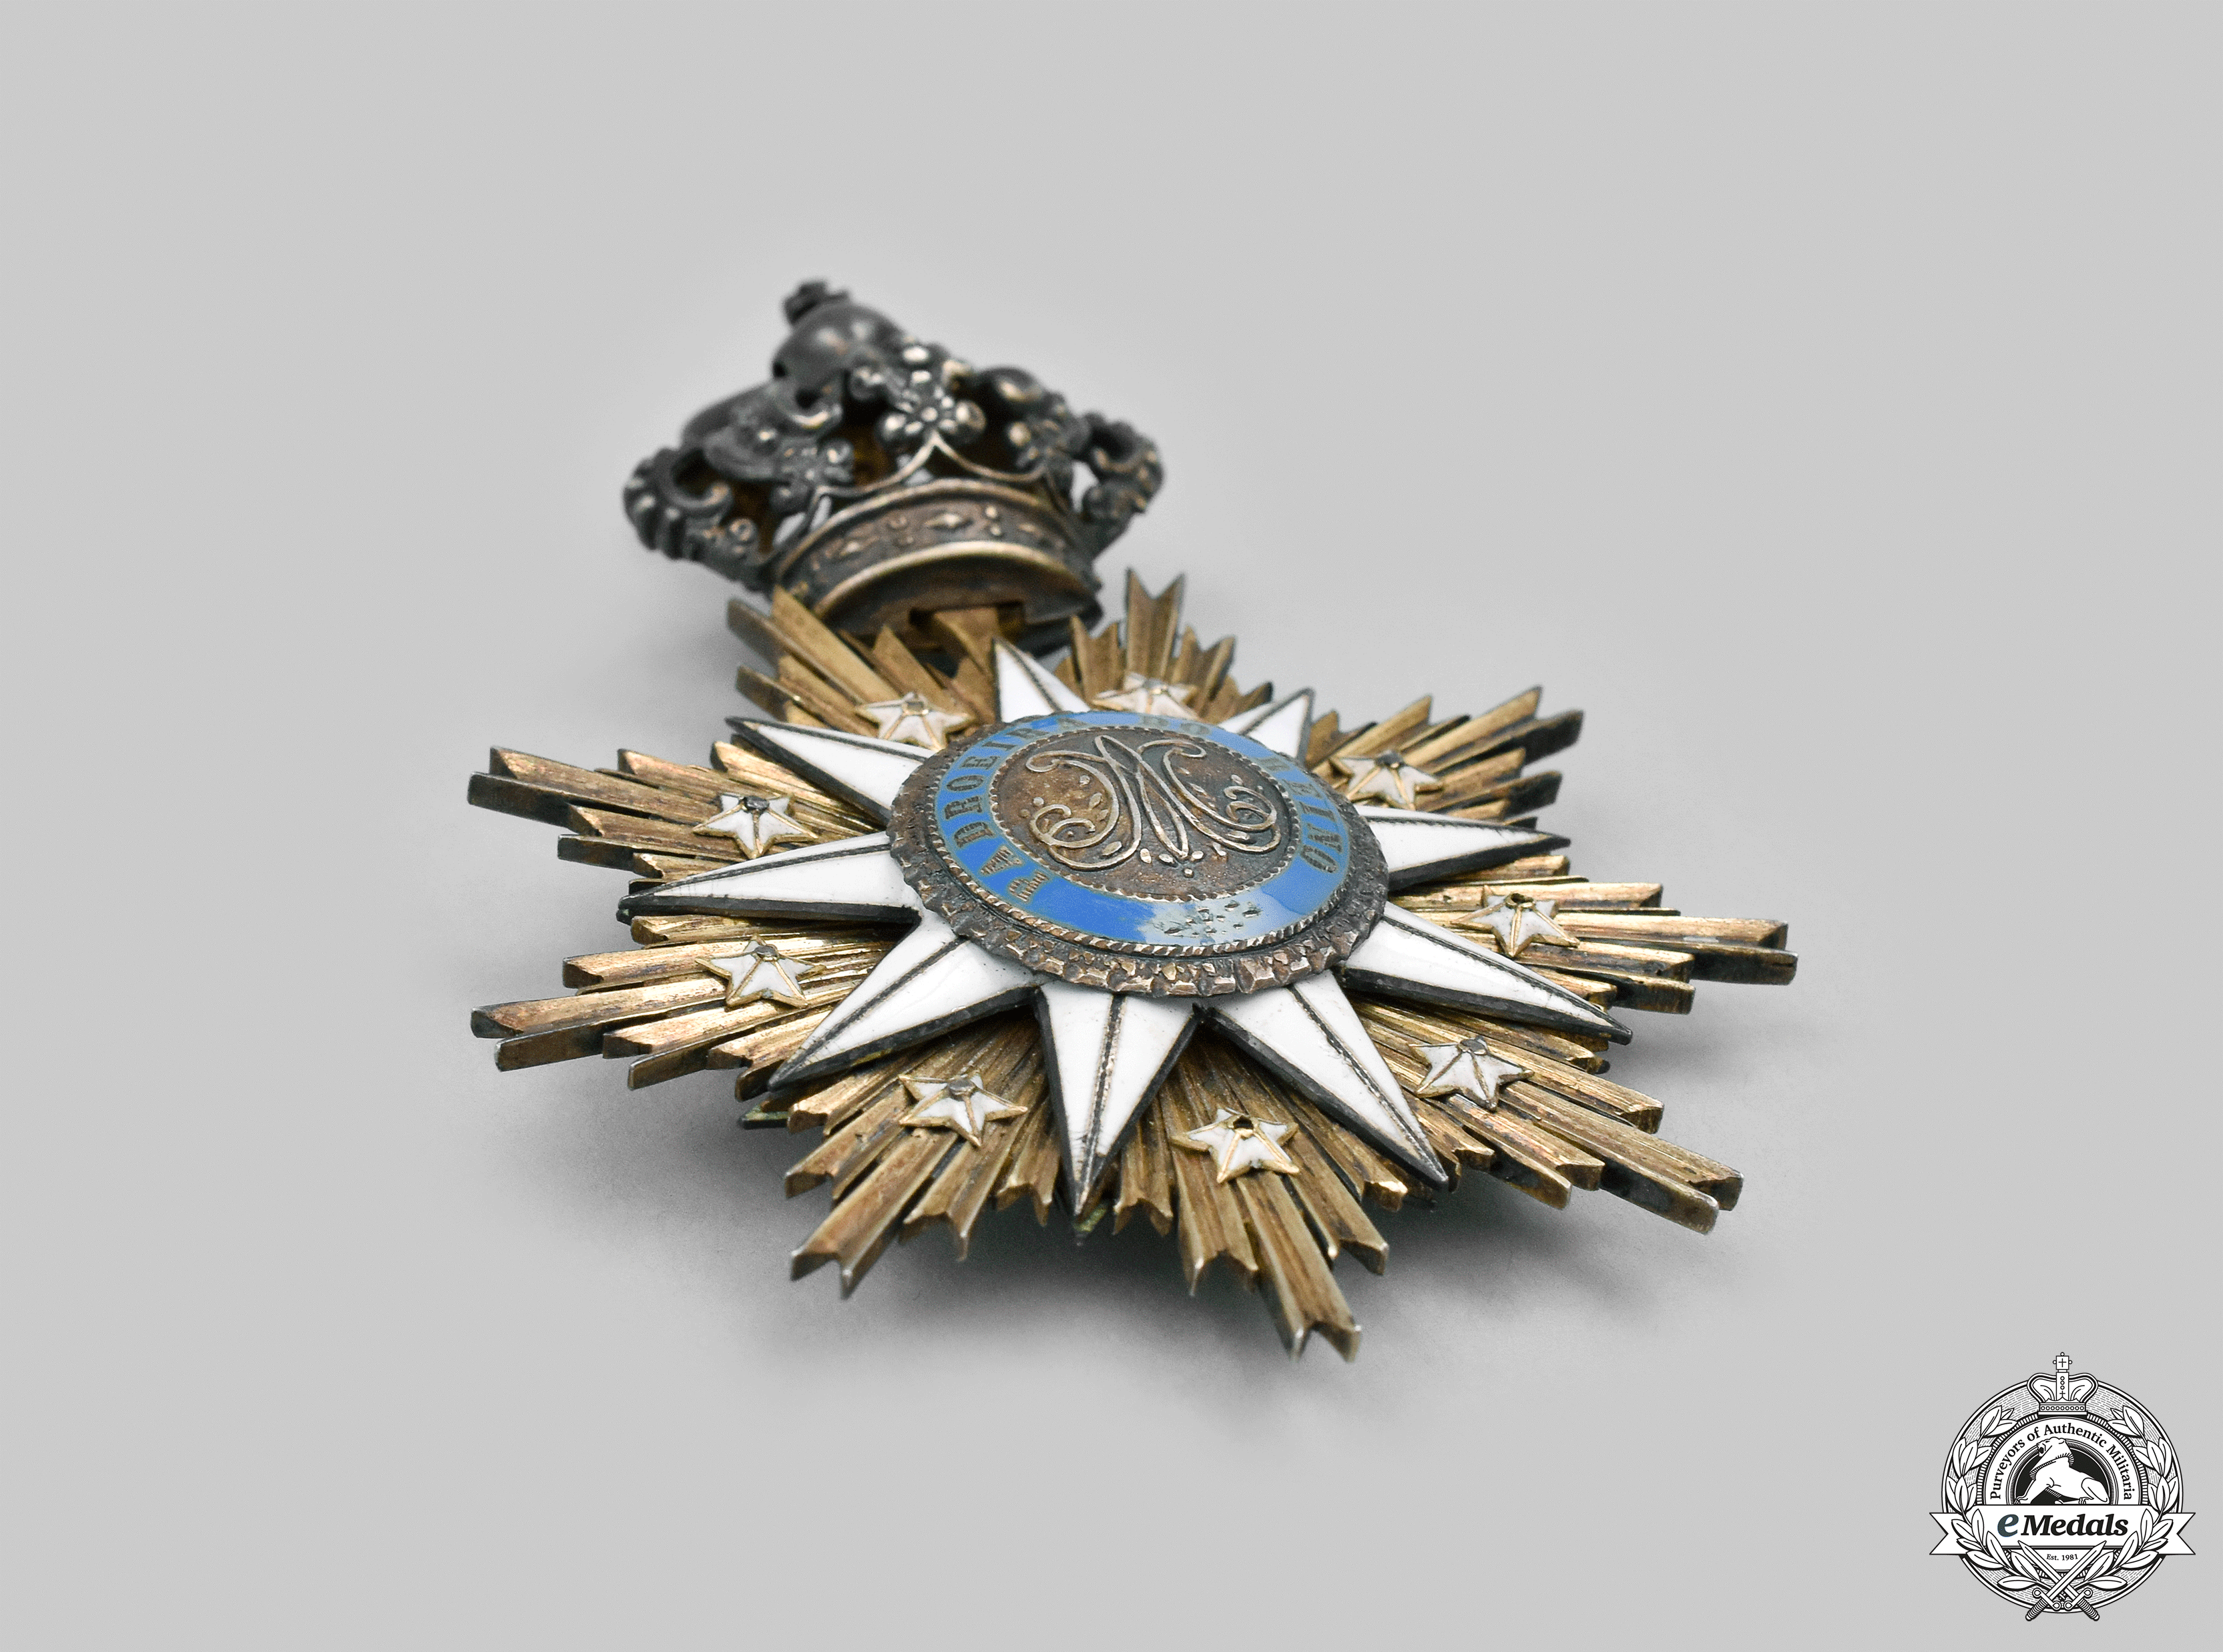 Portugal, Kingdom. An Order of the Immaculate Conception of Vila Viçosa, I Class Grand Cross Badge, c.1900